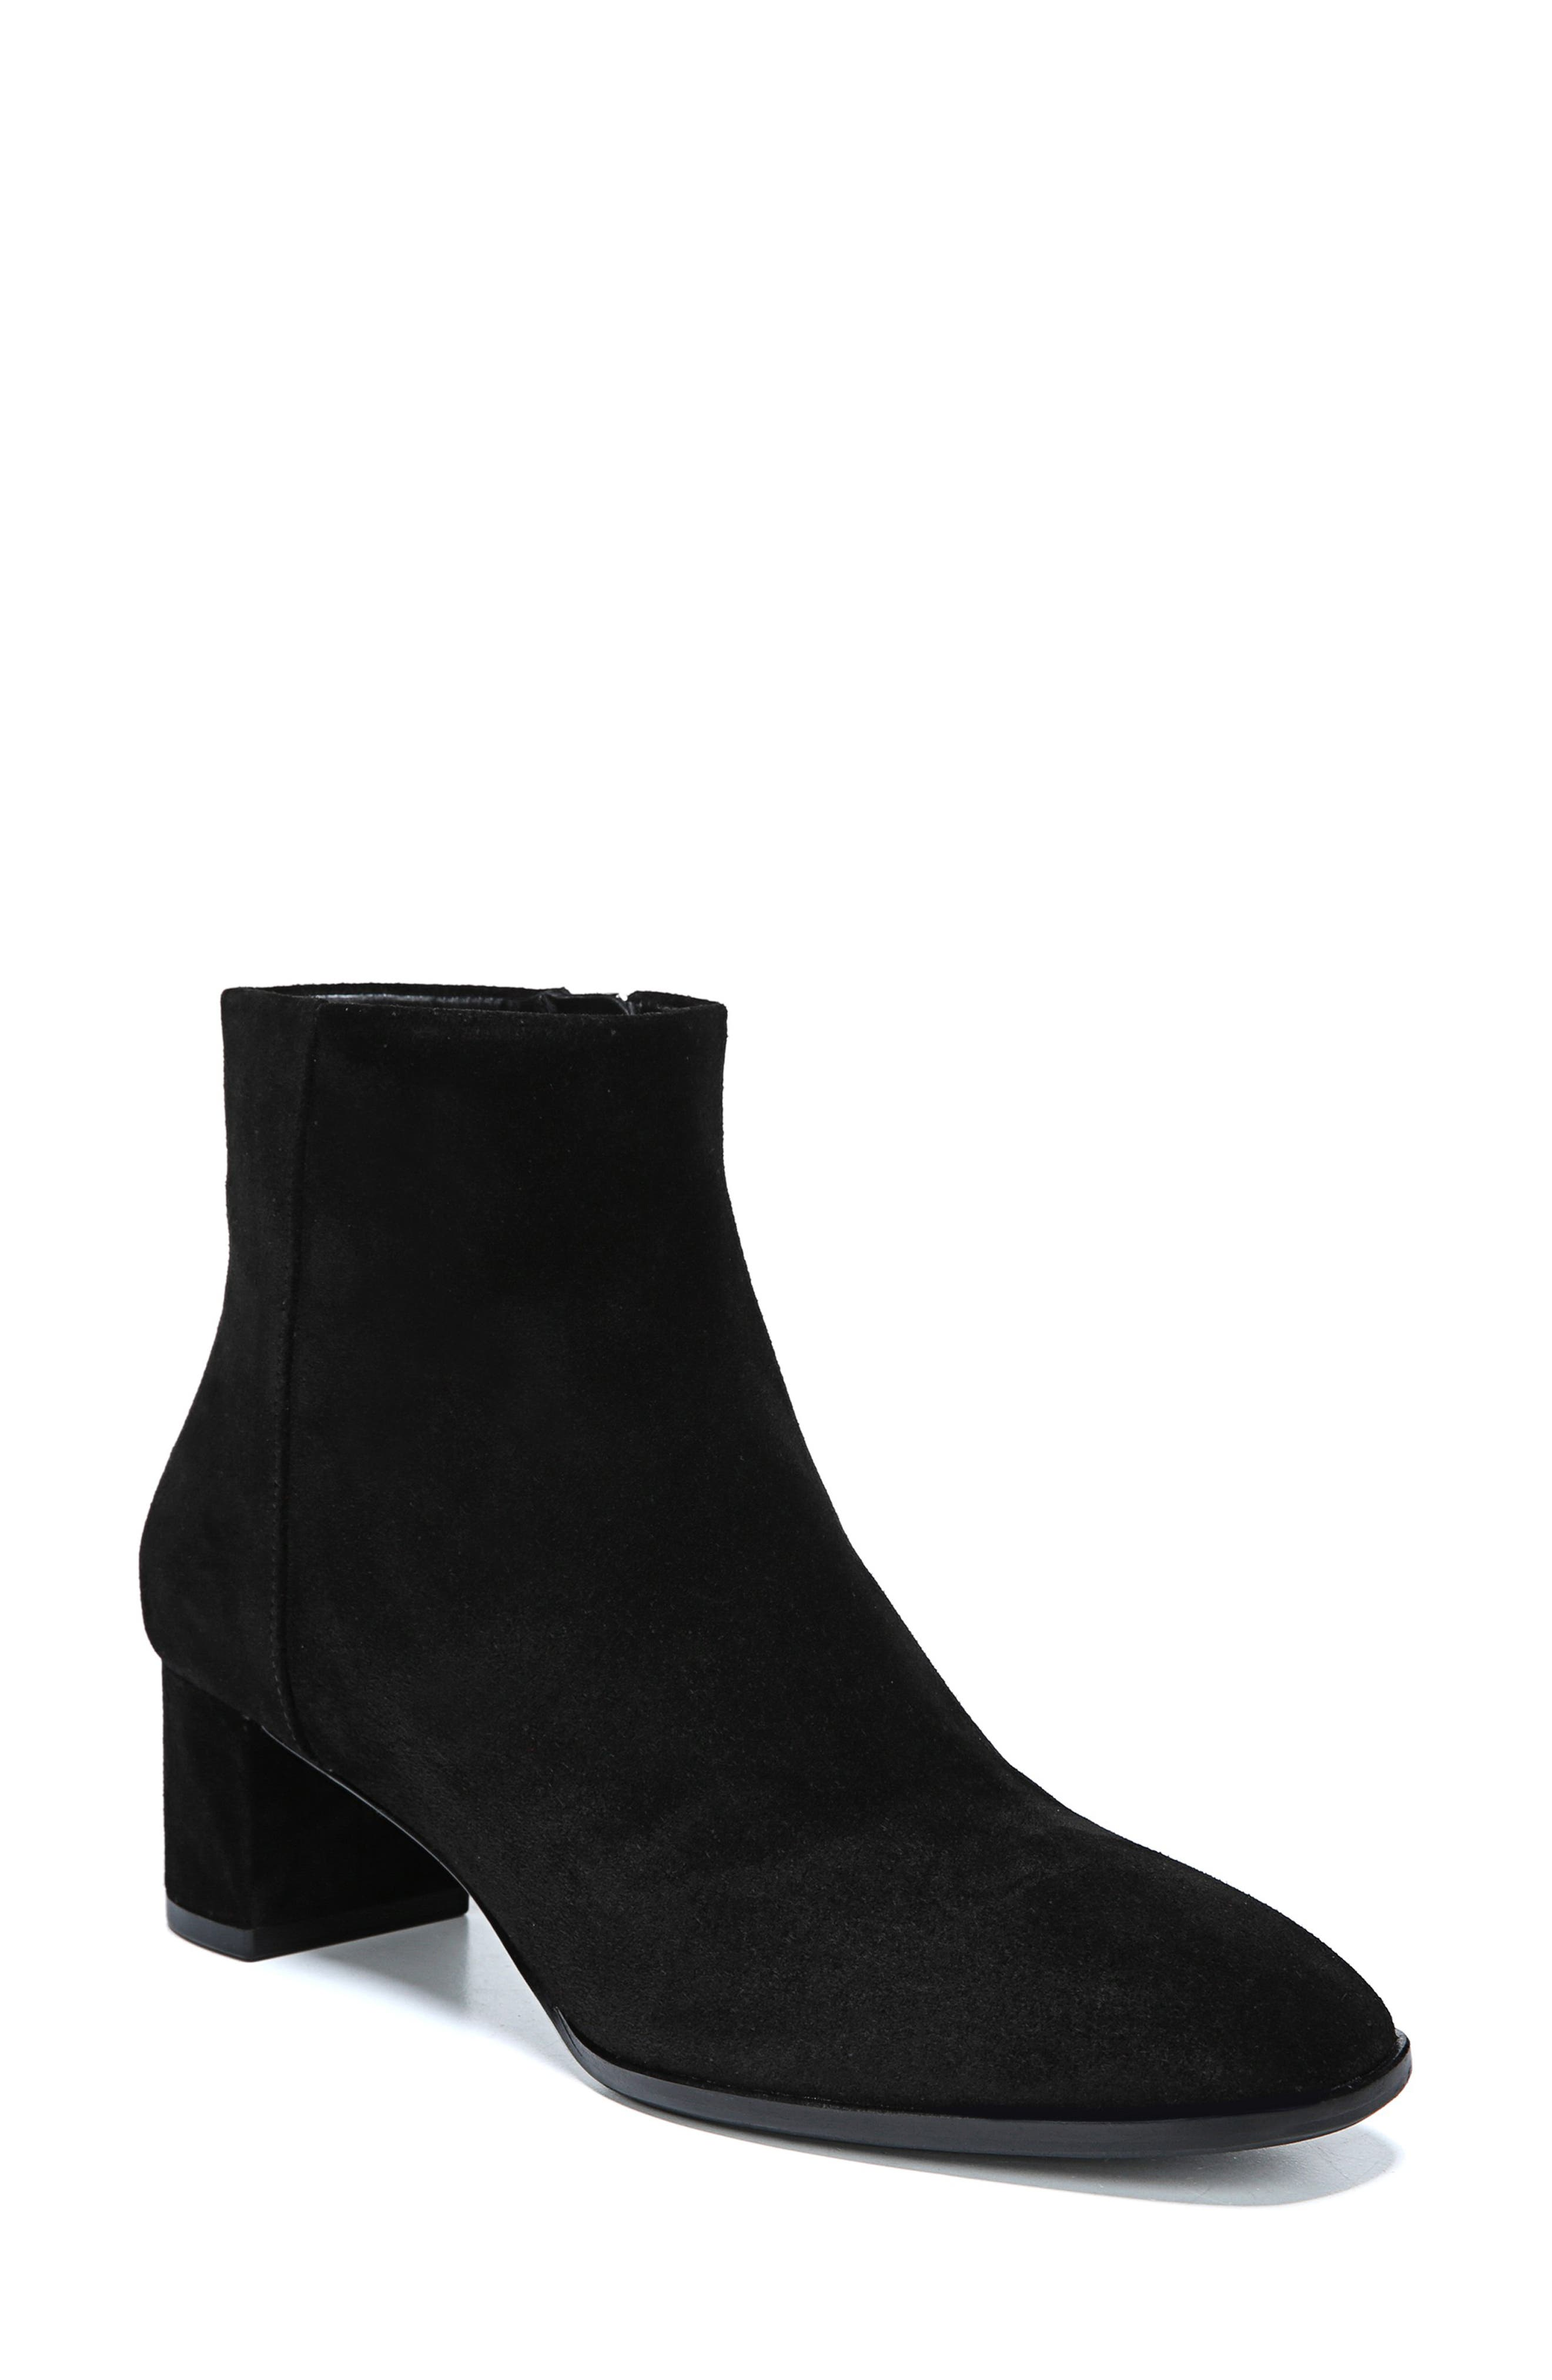 Vail Bootie,                             Main thumbnail 1, color,                             BLACK SUEDE